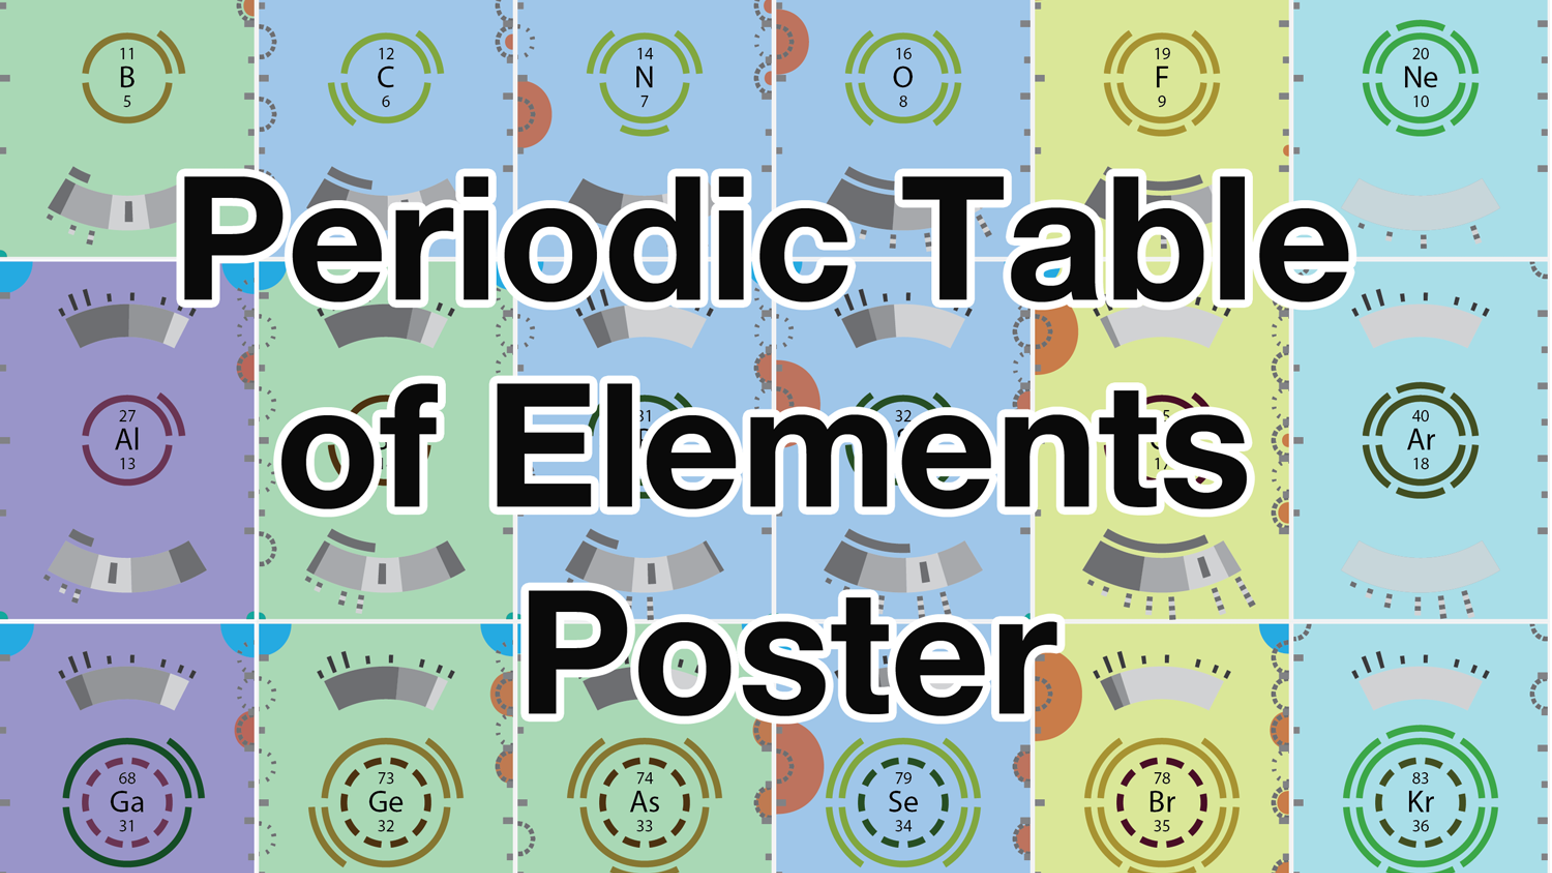 The periodic table of elements poster by sam price kickstarter a periodic table of elements that is easy to understand and visually appealing to look gamestrikefo Gallery